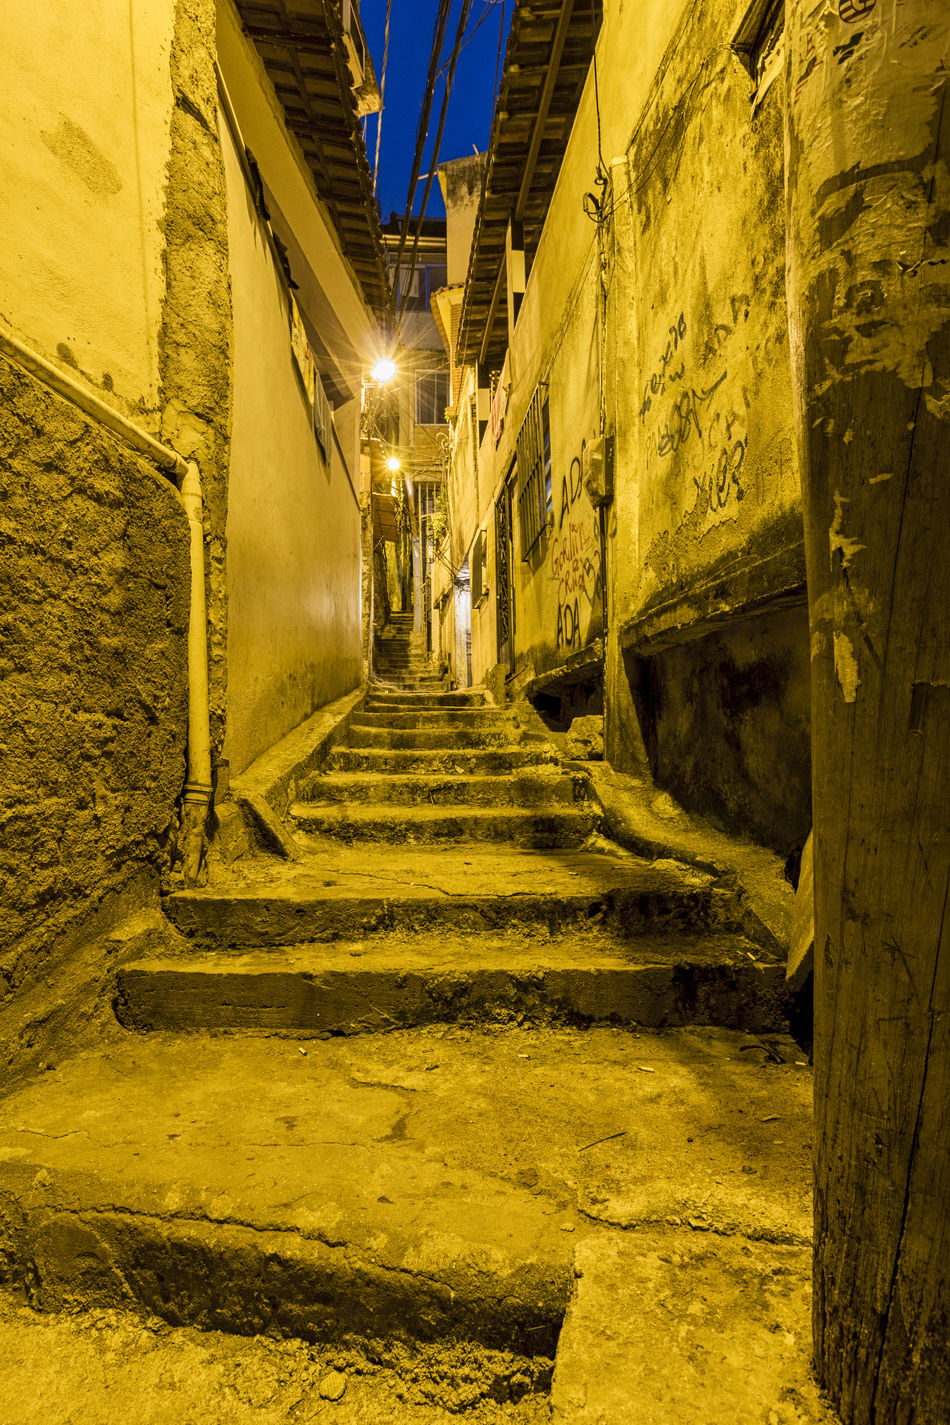 Alleyway in the favela Vidigal Architecture Building Exterior City Favela Favelabrazil Favelas Illuminated Night No People Outdoors Rio De Janeiro Stairways Vidigal